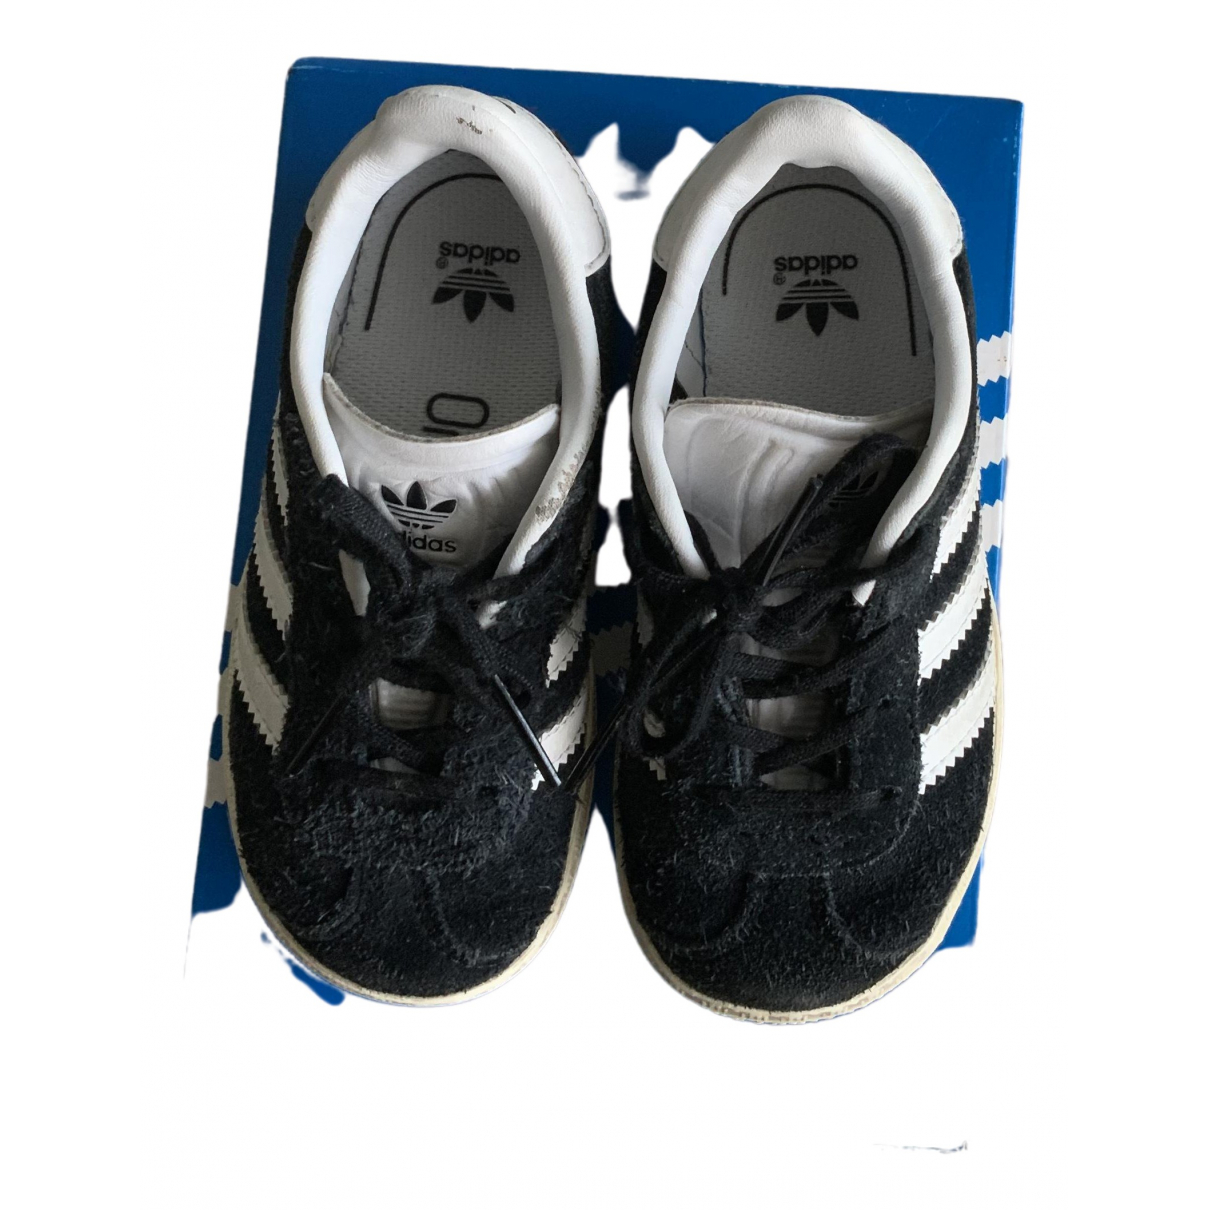 Adidas Gazelle Black Leather Trainers for Kids 23 FR